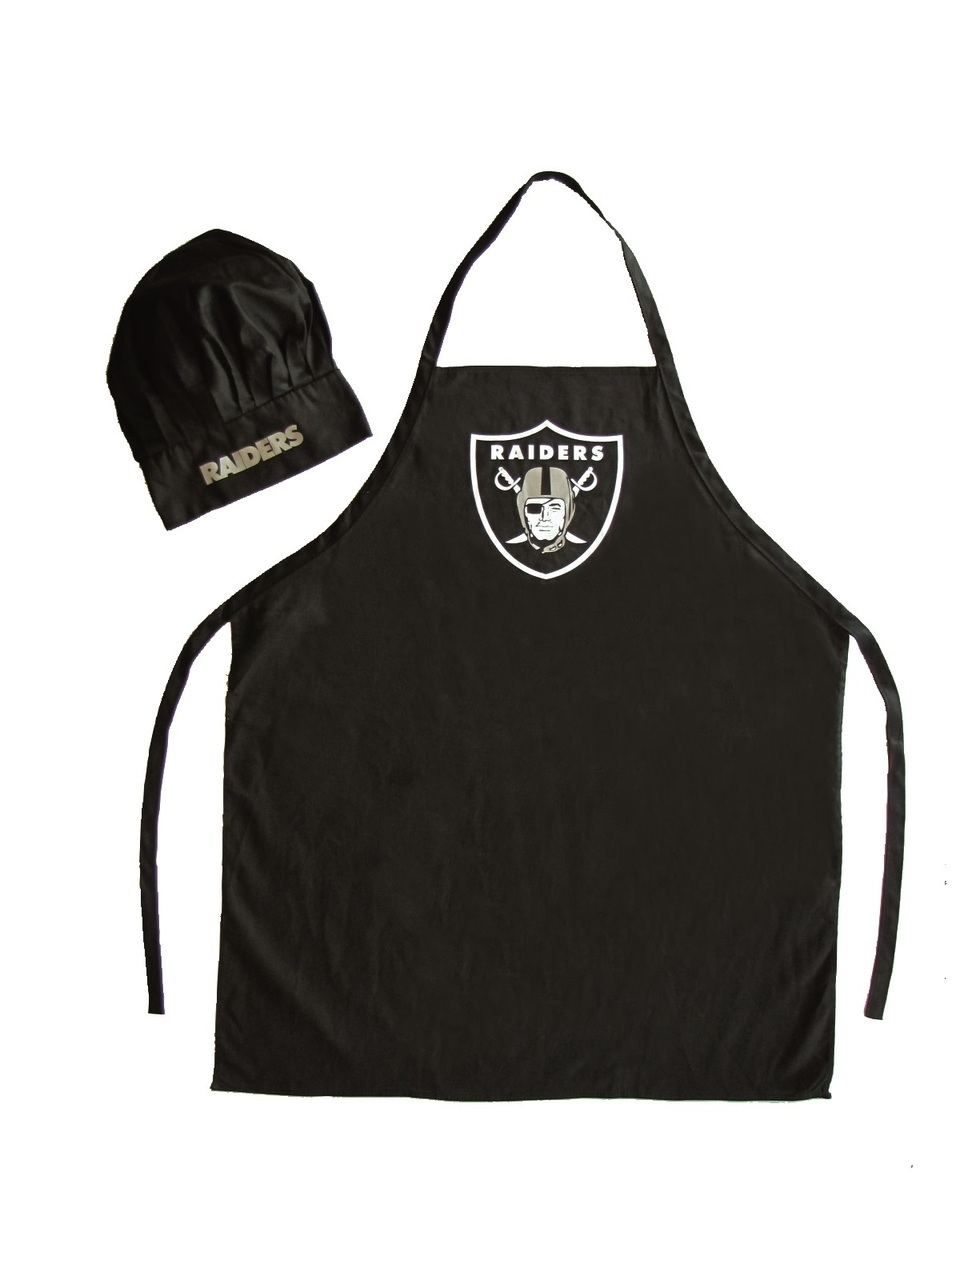 Football Nfl Football Oakland Raiders Aprons - 5717524081 - Oakland Raiders Apron And Chef Hat Set 5717524081